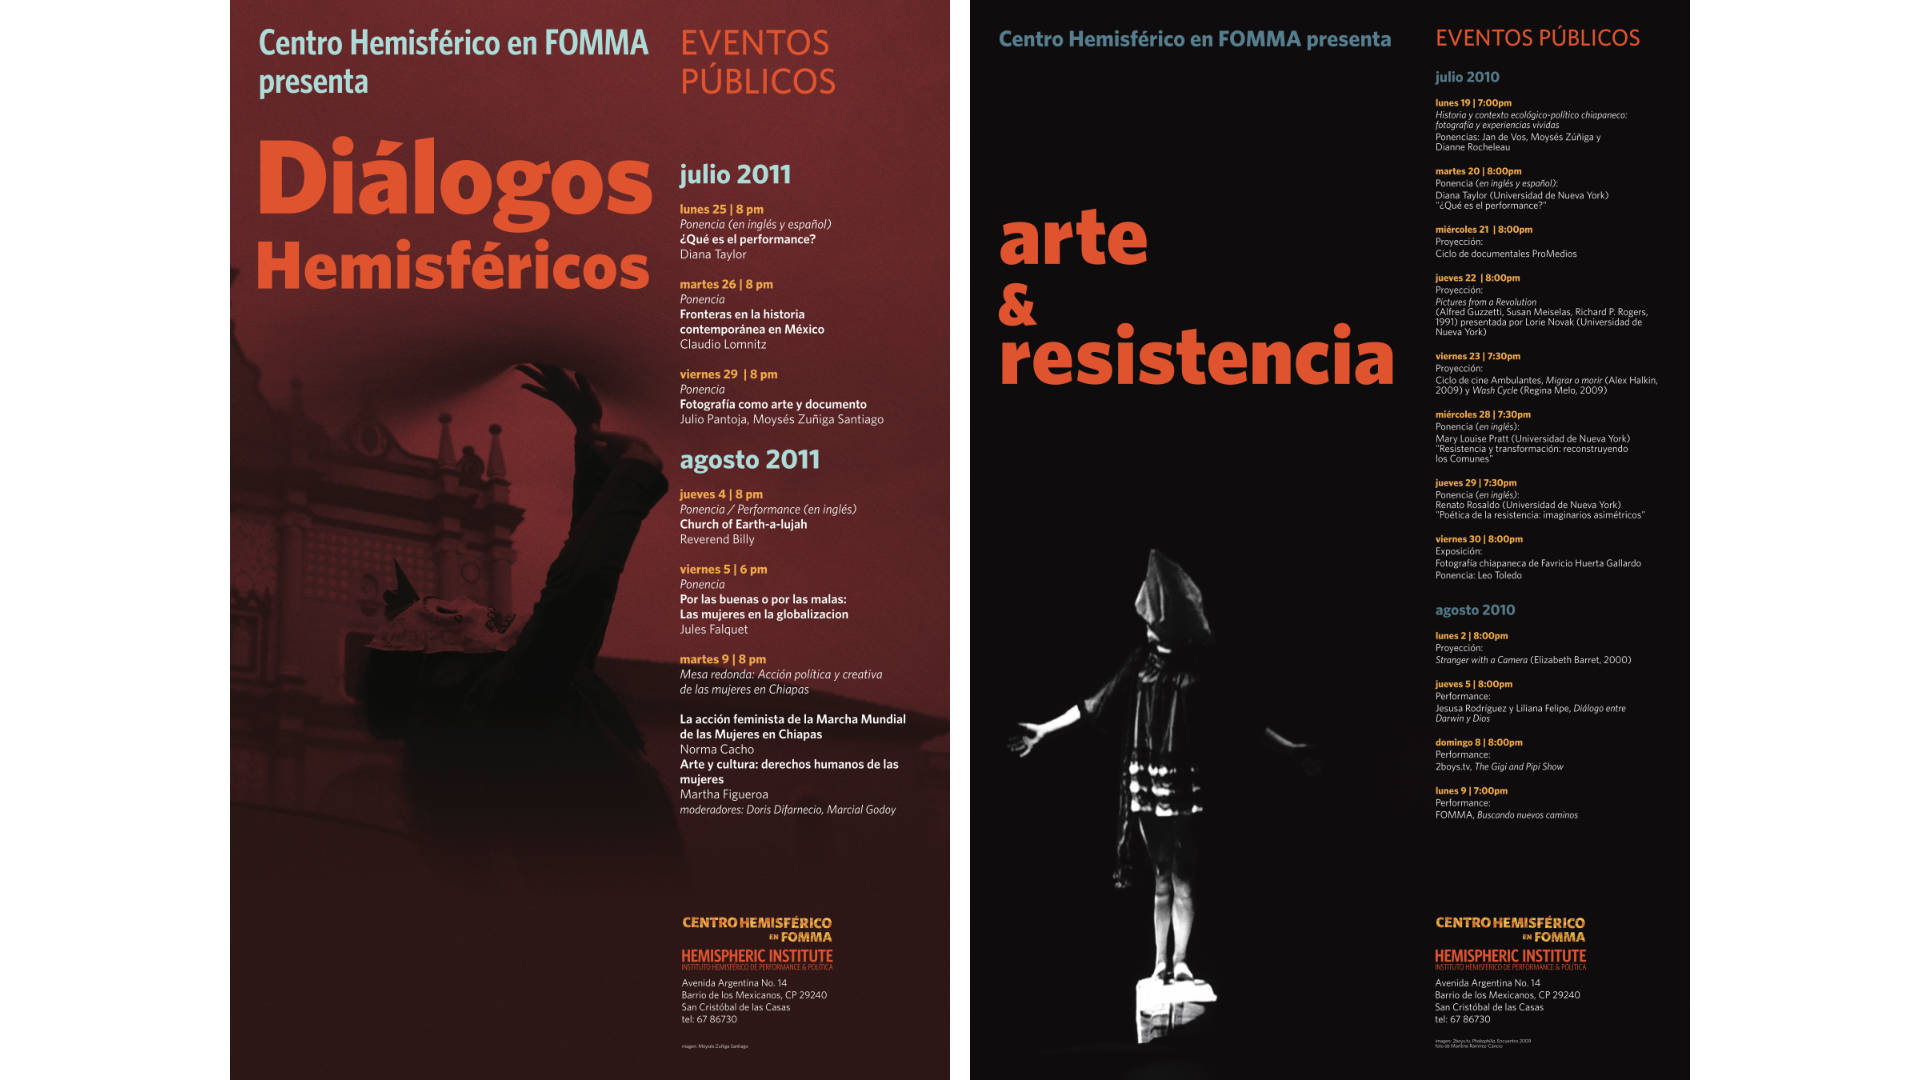 Hemispheric Institute event posters